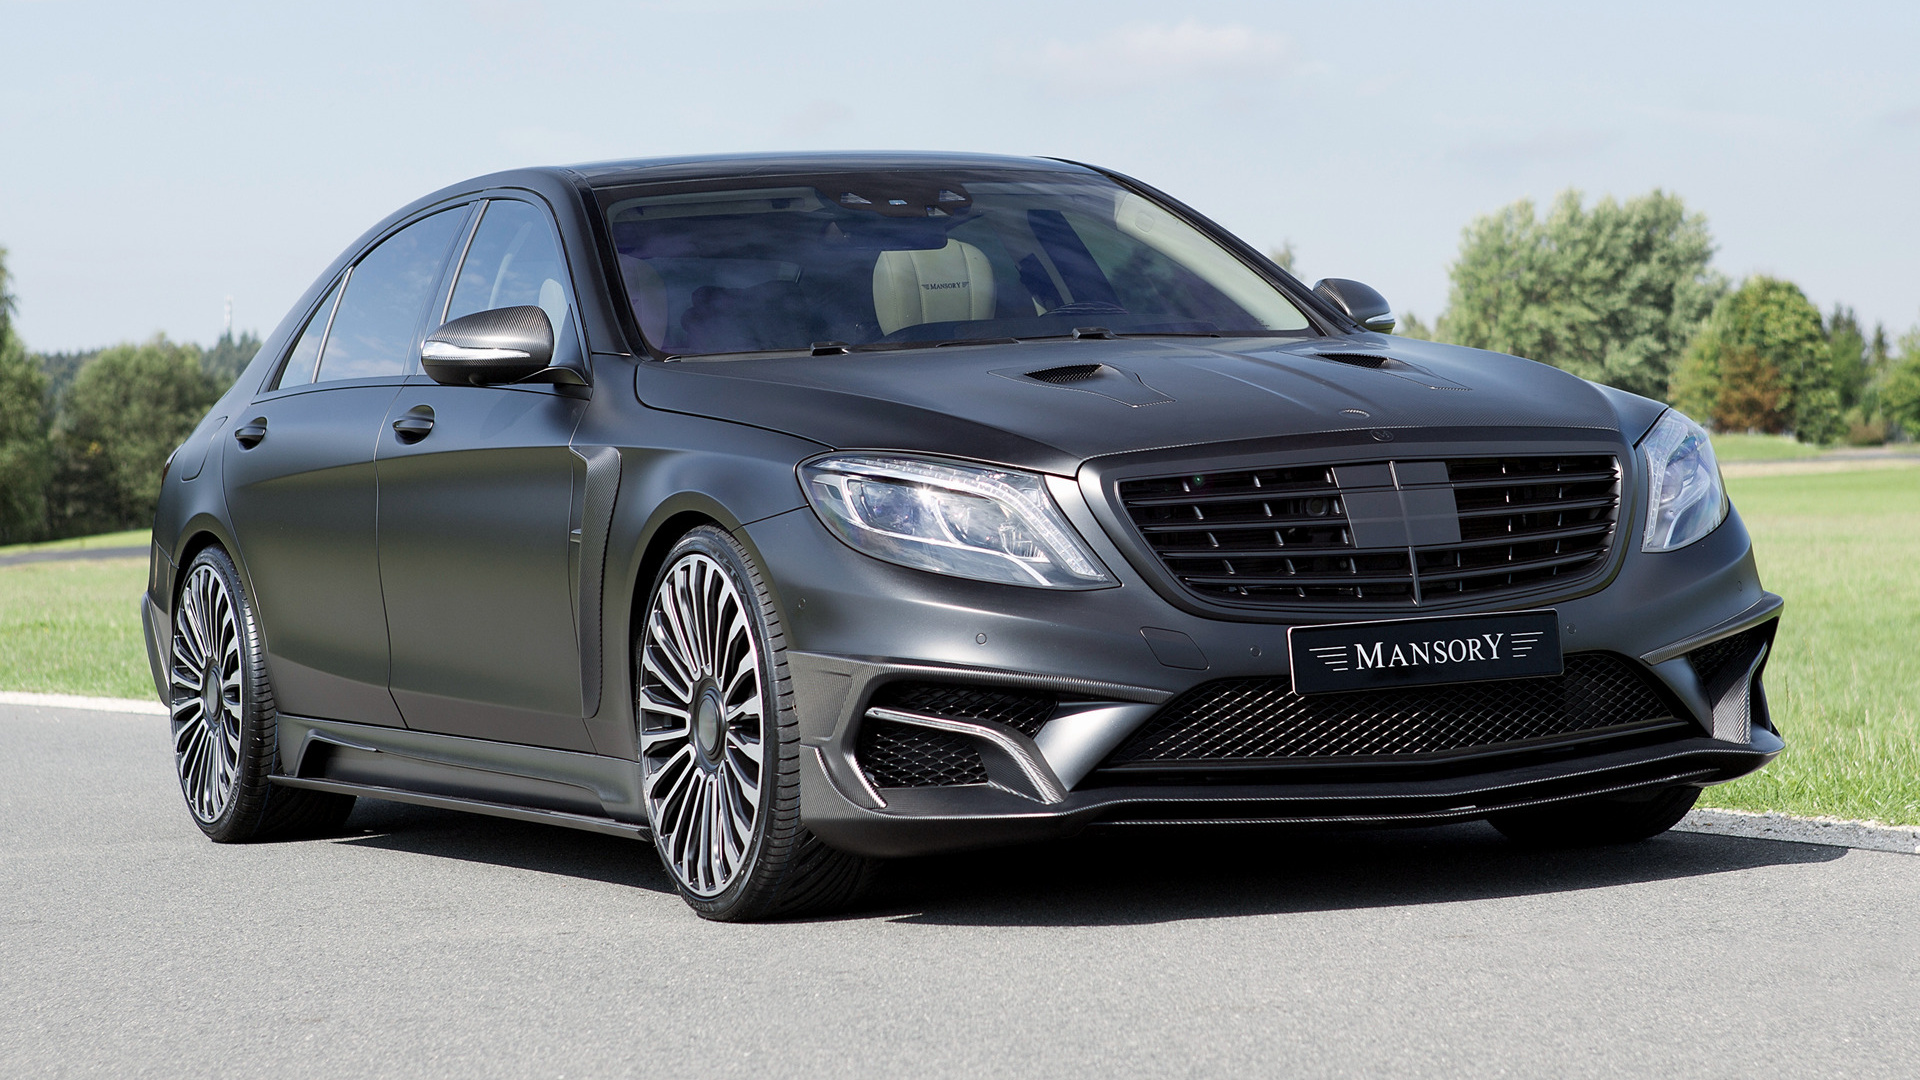 Mercedes benz s 63 amg black edition by mansory 2015 for Mercedes benz black edition